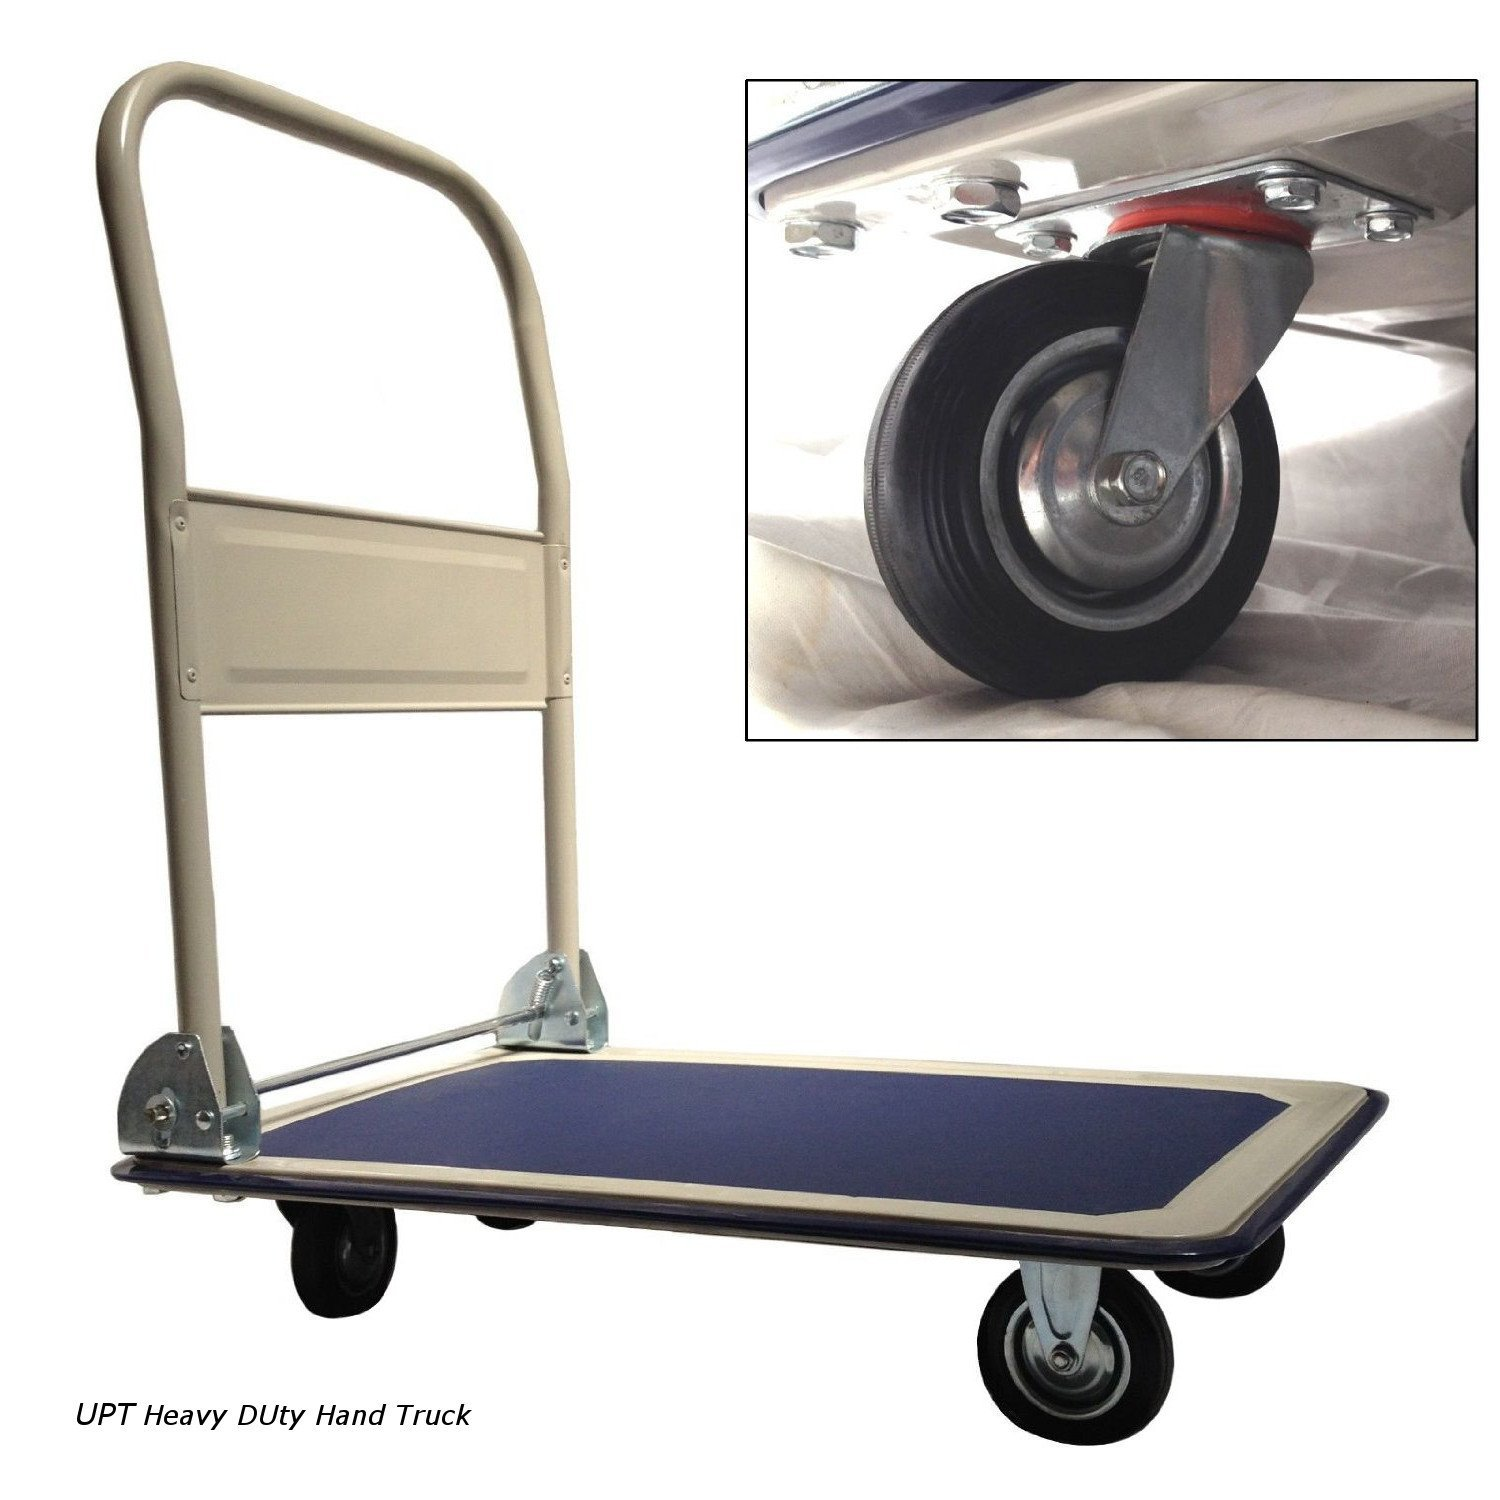 UPT Platform Truck Push Cart - Folding Collapsible Warehouse Retail Store Shopping Dolly - 330 Lbs Capacity Metal Wheels